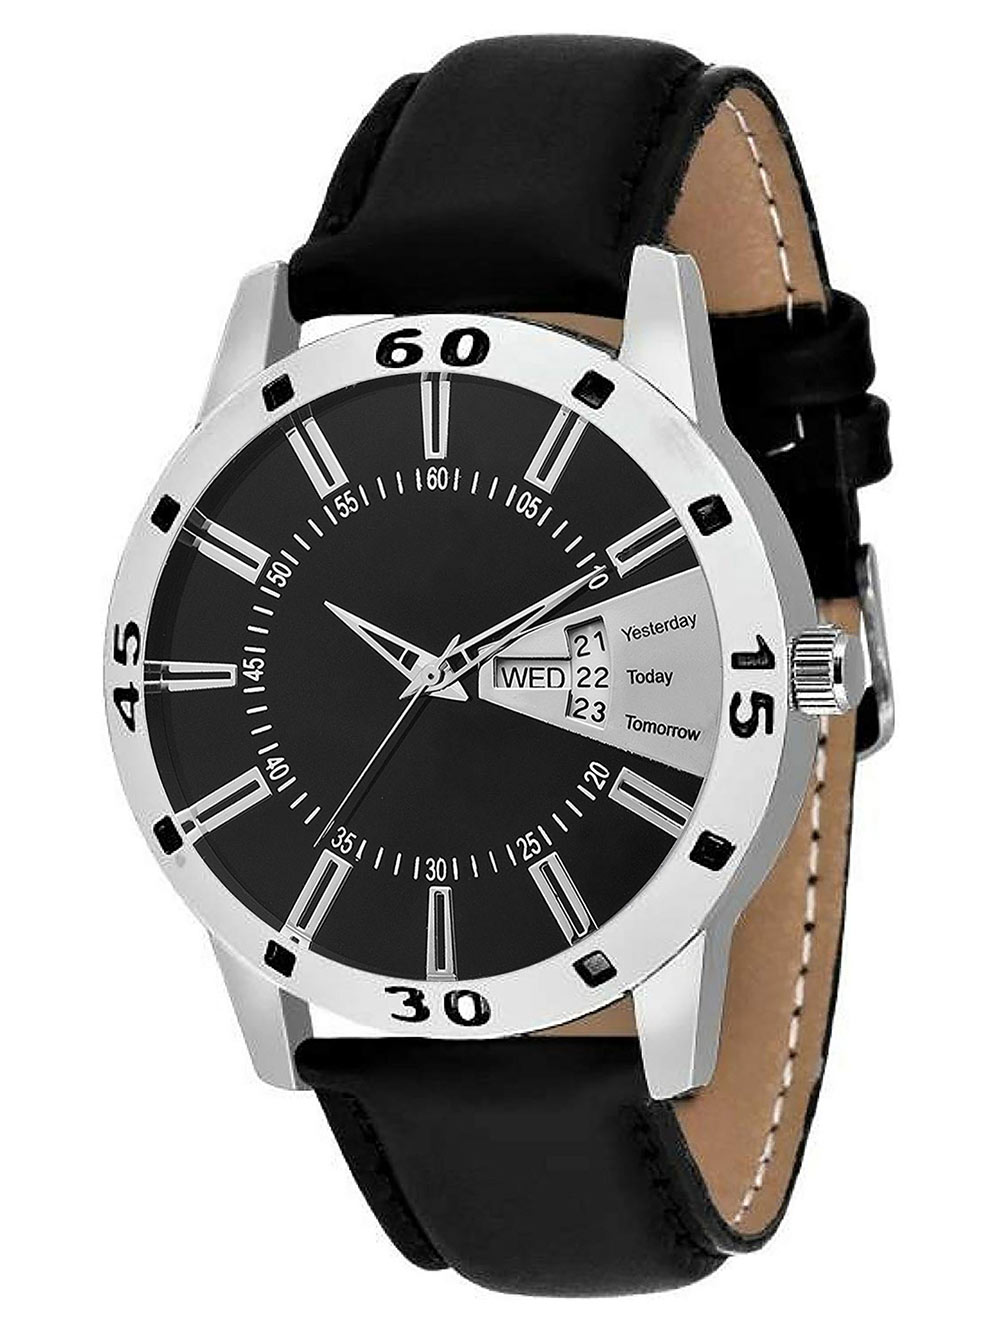 FX472 Black Band Analogue Mens Watch